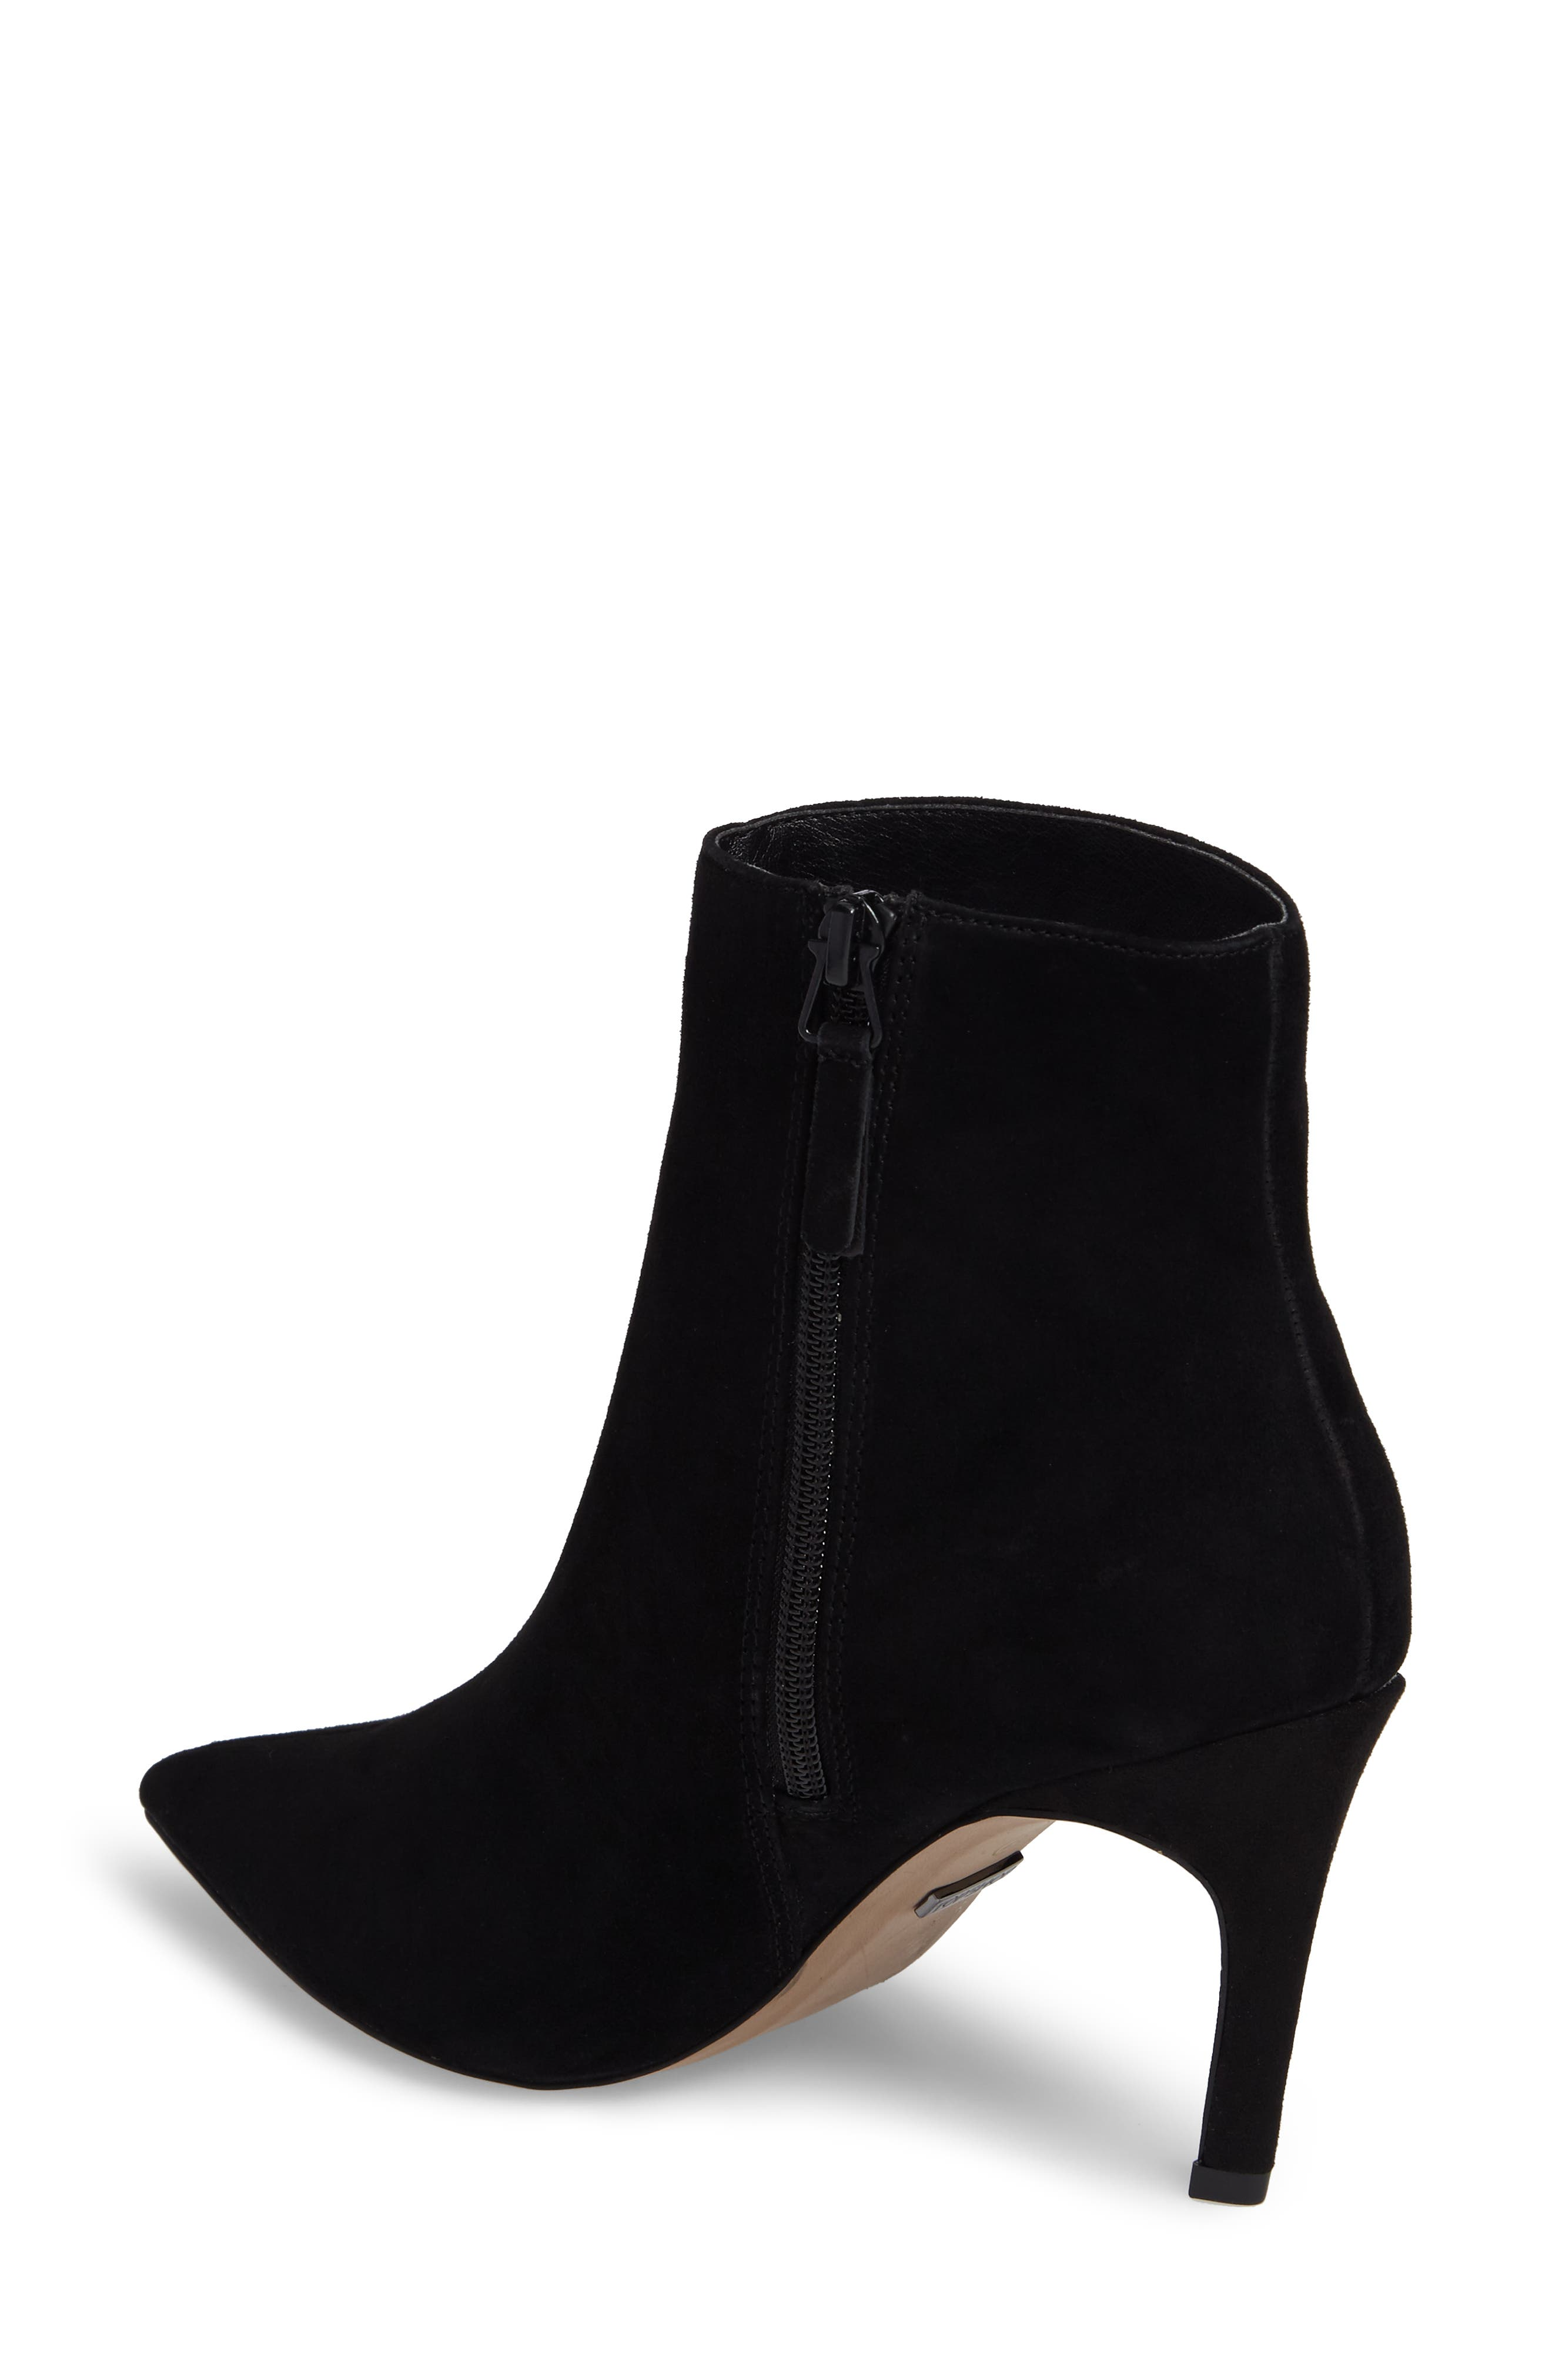 Hot Toddy Pointy Toe Boot,                             Alternate thumbnail 2, color,                             001